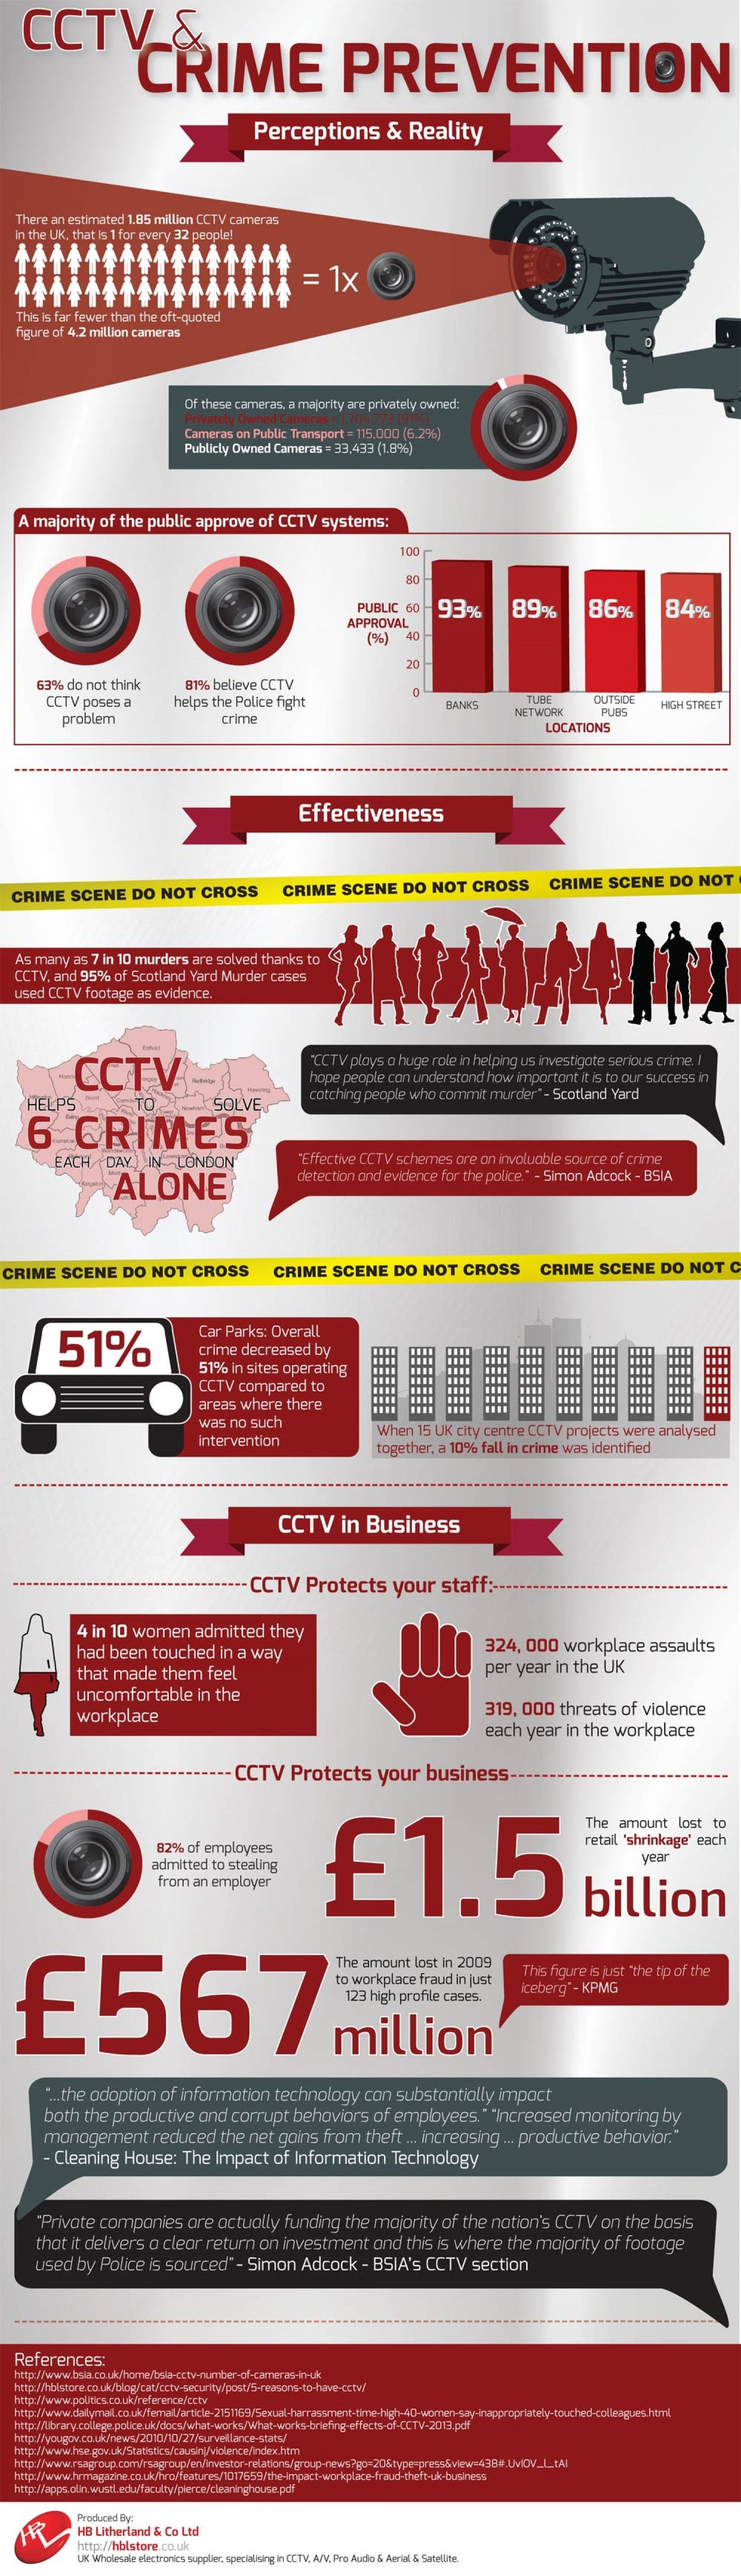 Cctv and crime reduction